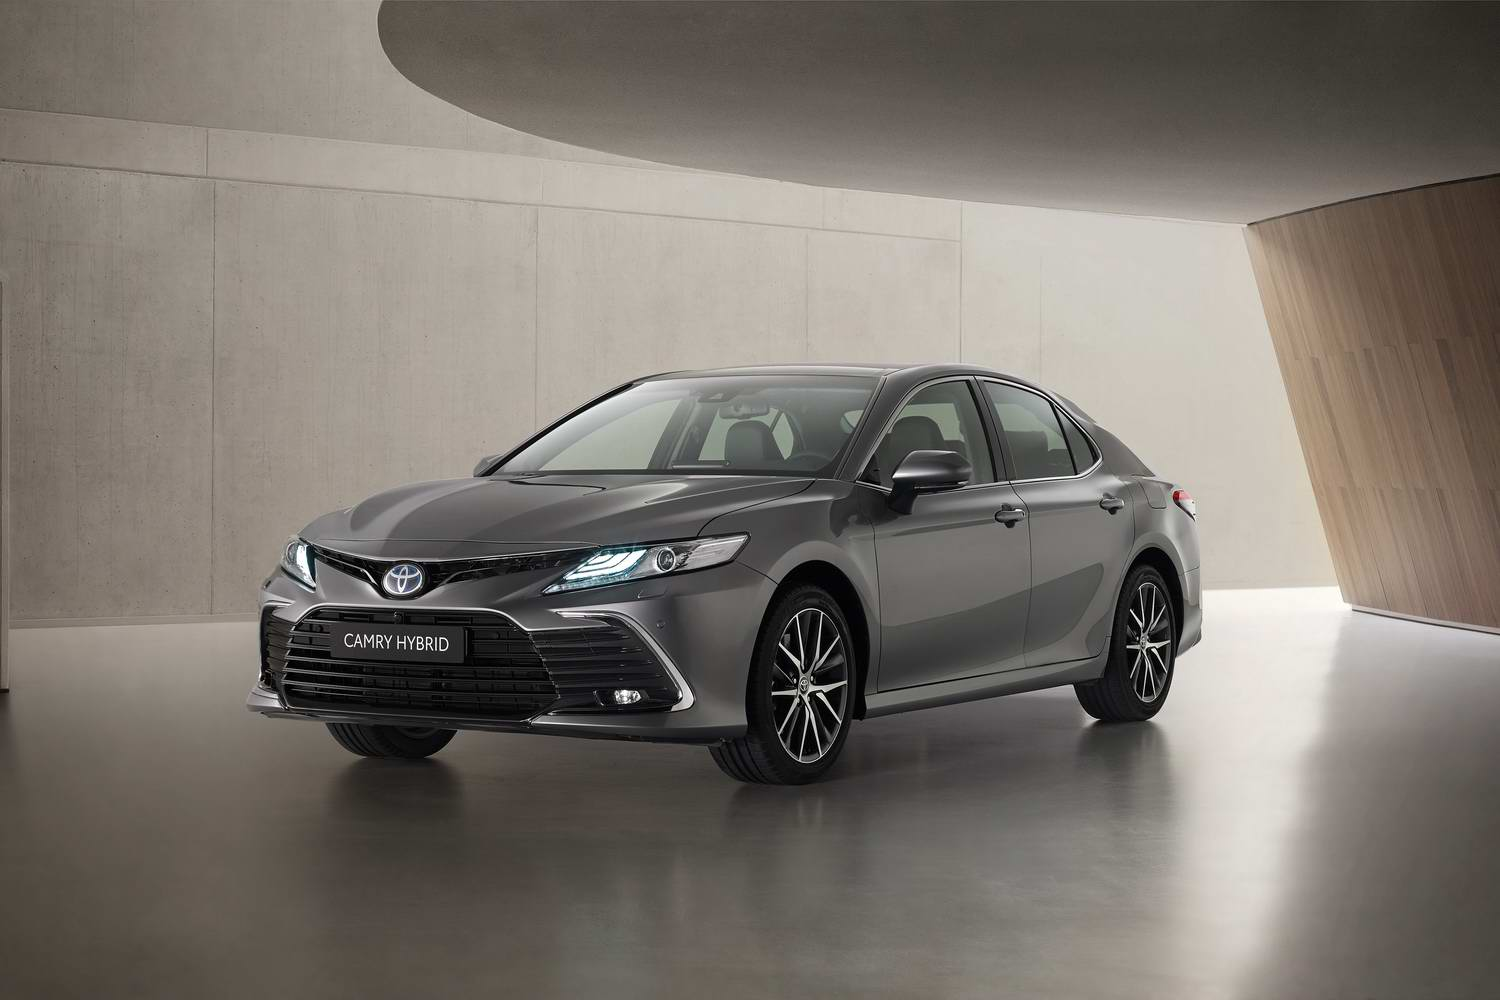 Car News | Toyota Camry updated with new styling | CompleteCar.ie